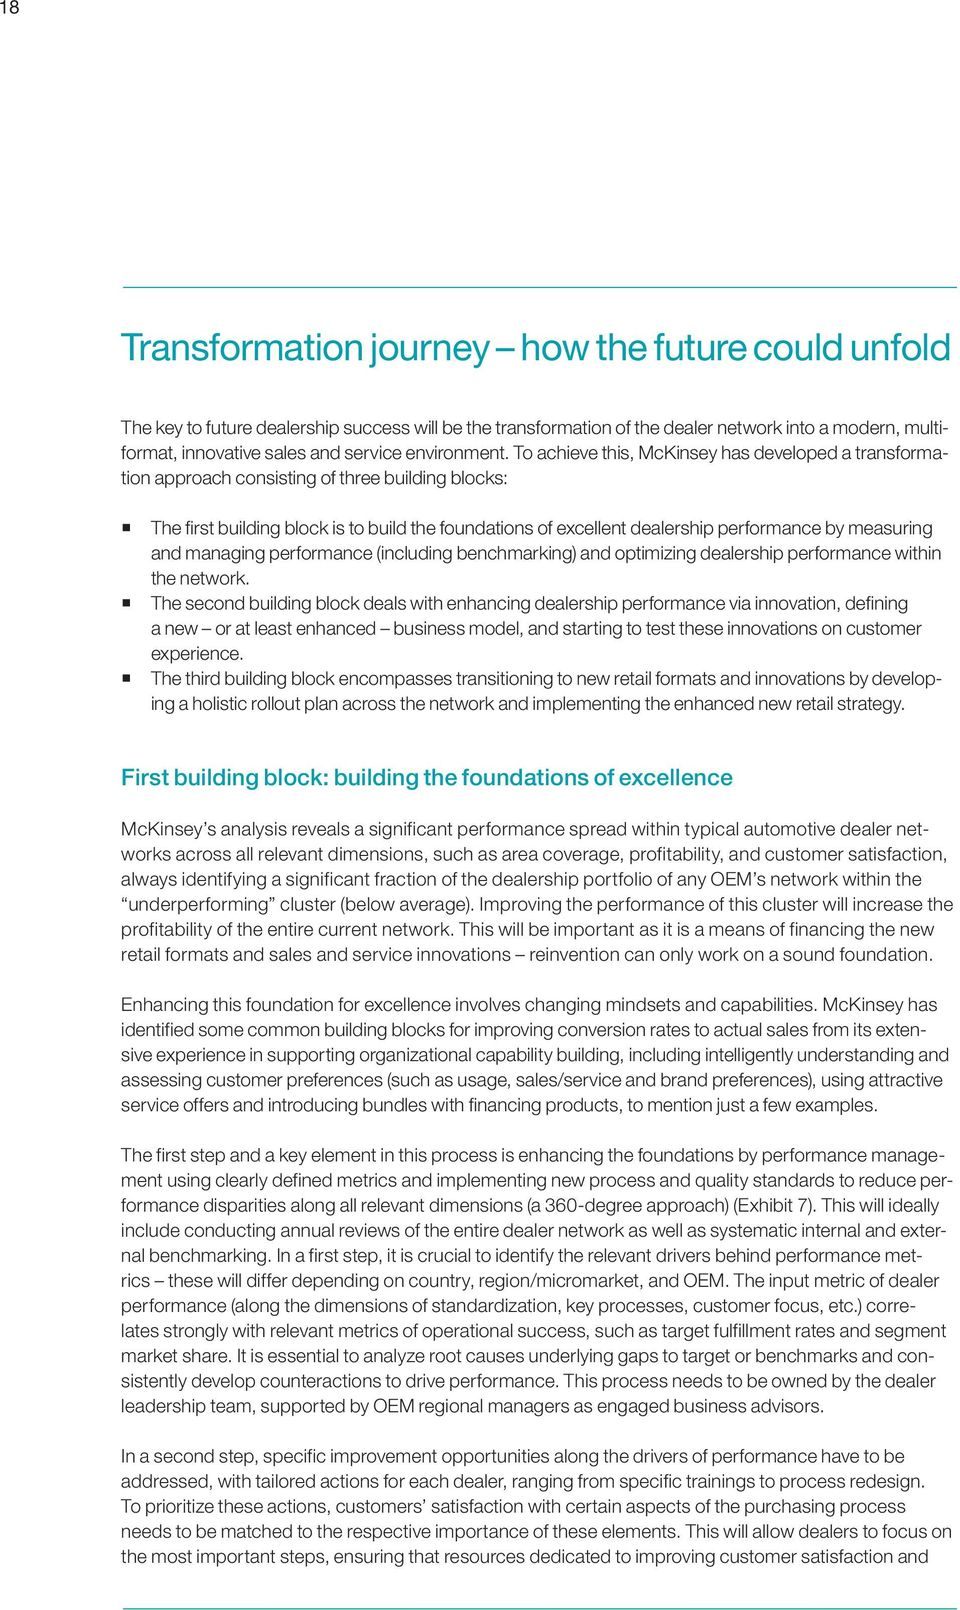 To achieve this, McKinsey has developed a transformation approach consisting of three building blocks: The first building block is to build the foundations of excellent dealership performance by